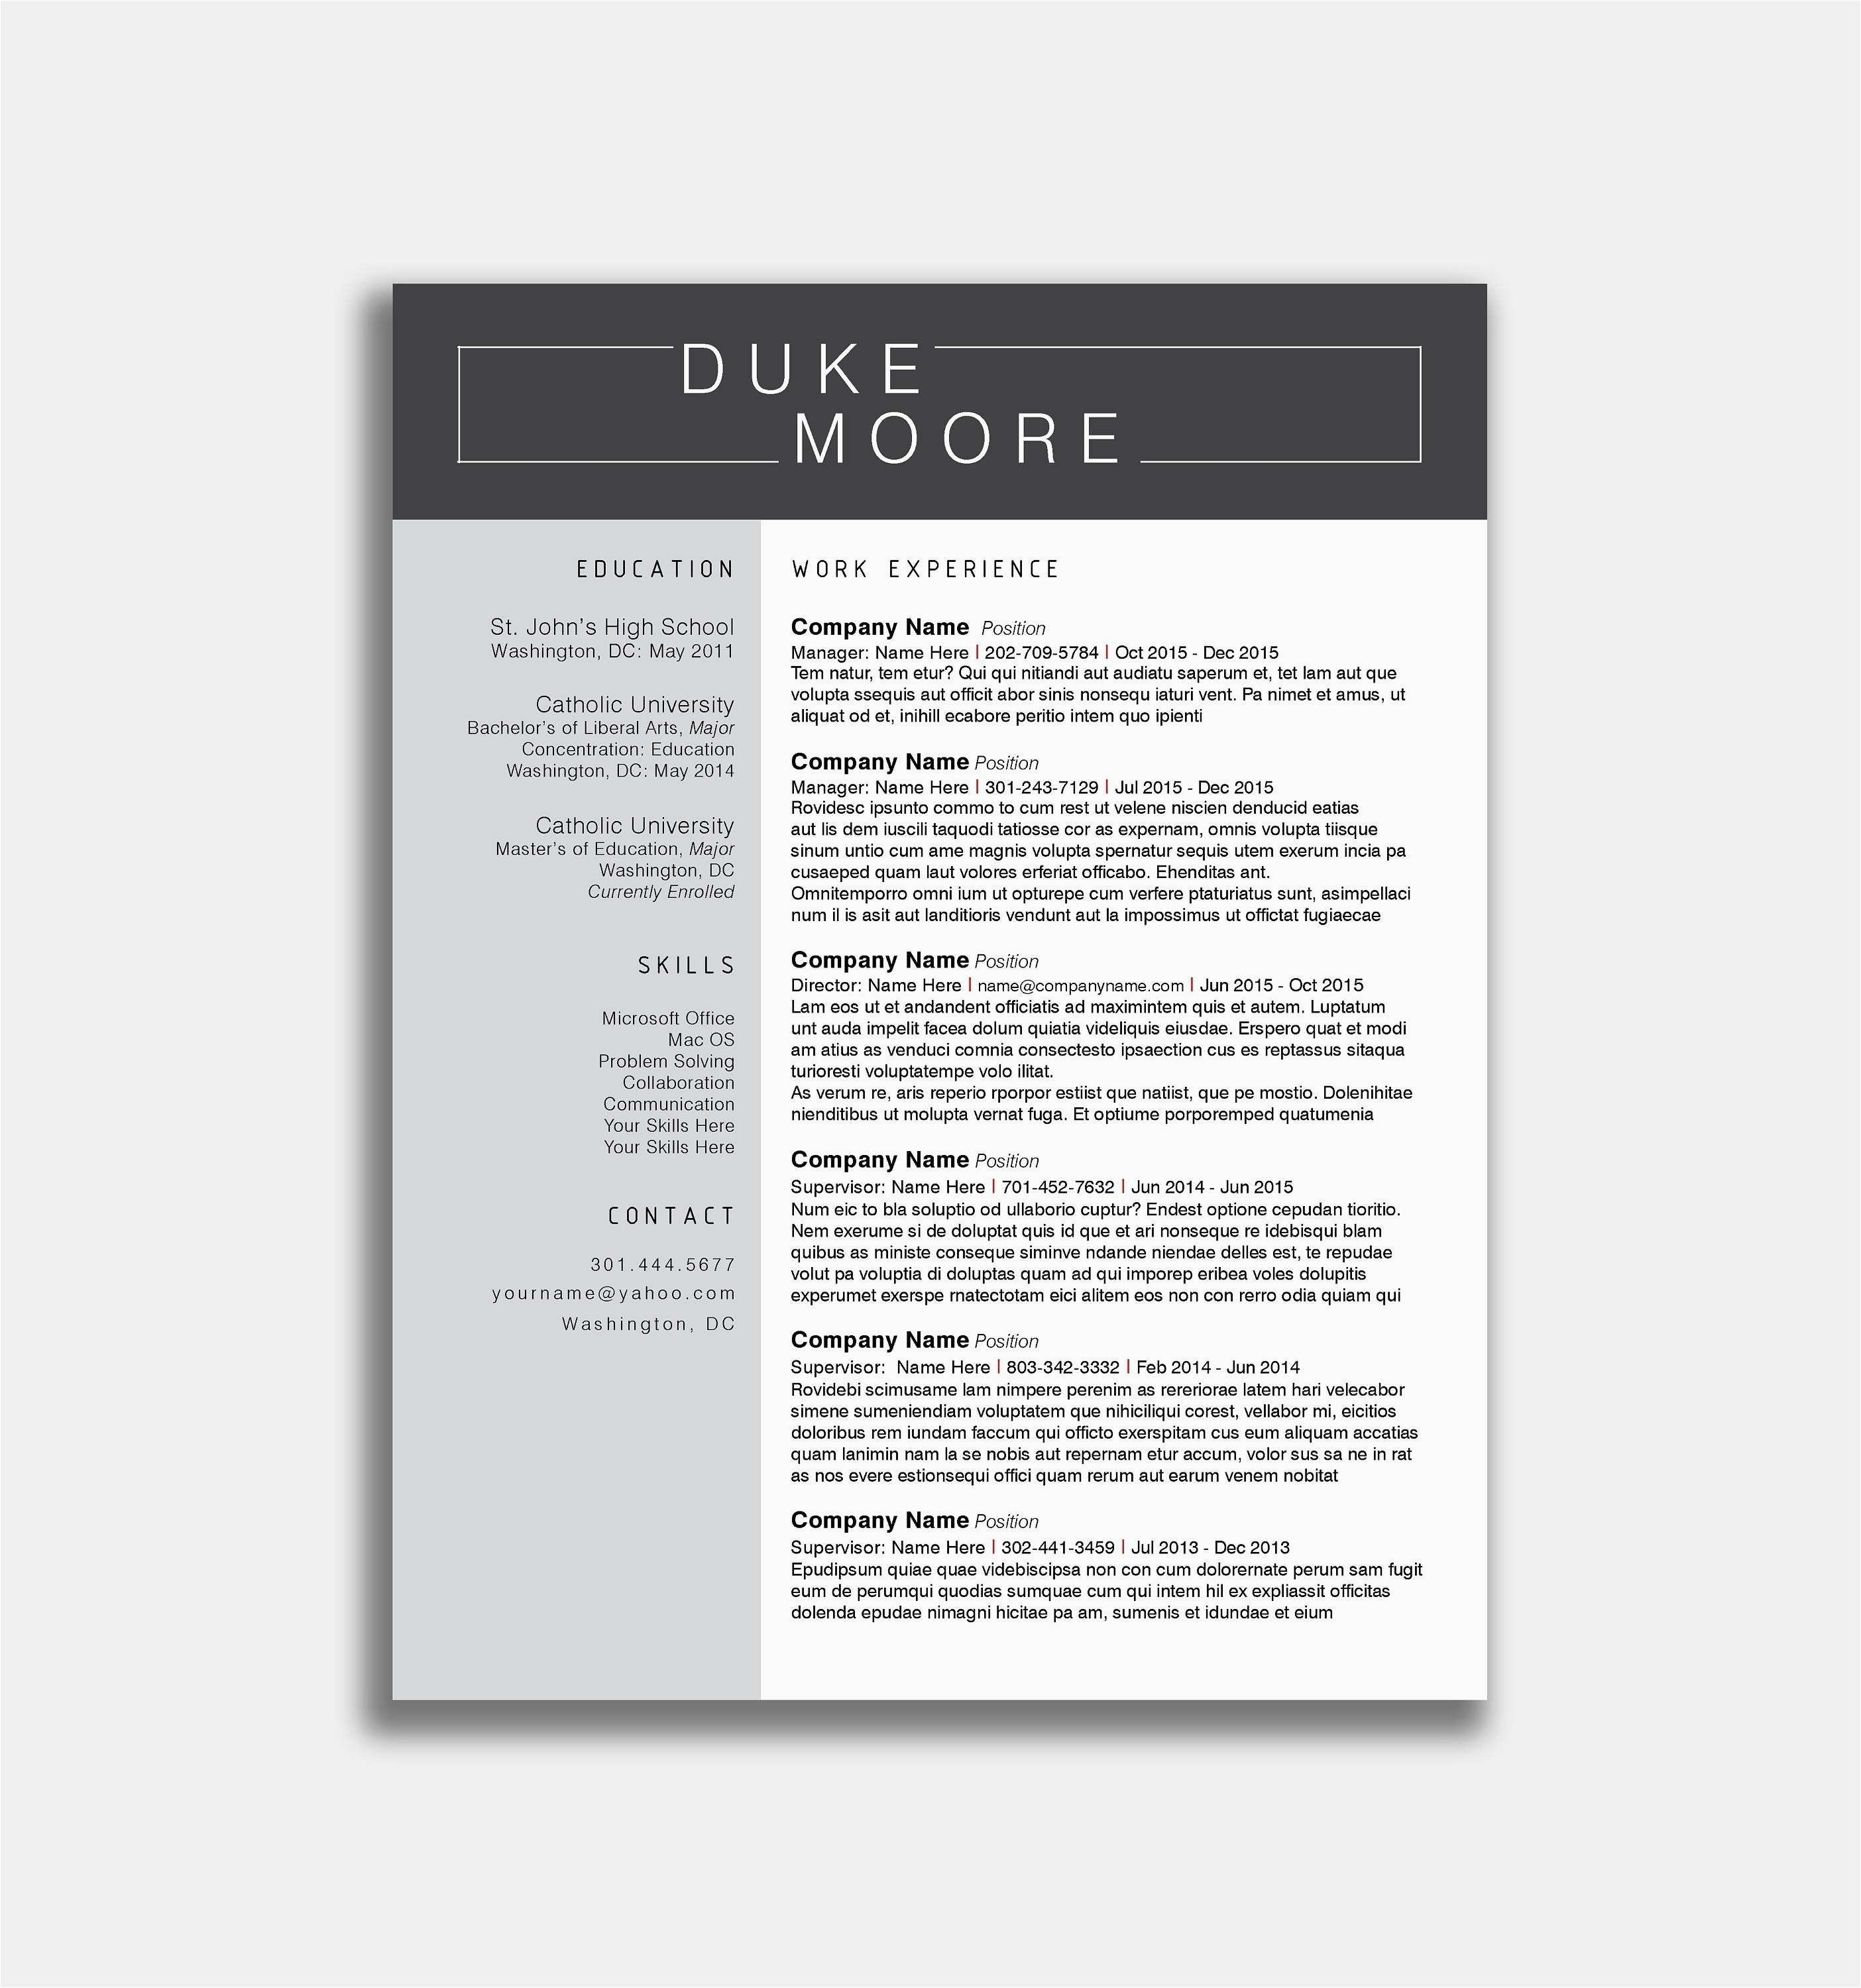 Resume Entry Level Template - Types Resume Example How to Type Resume Best New Entry Level